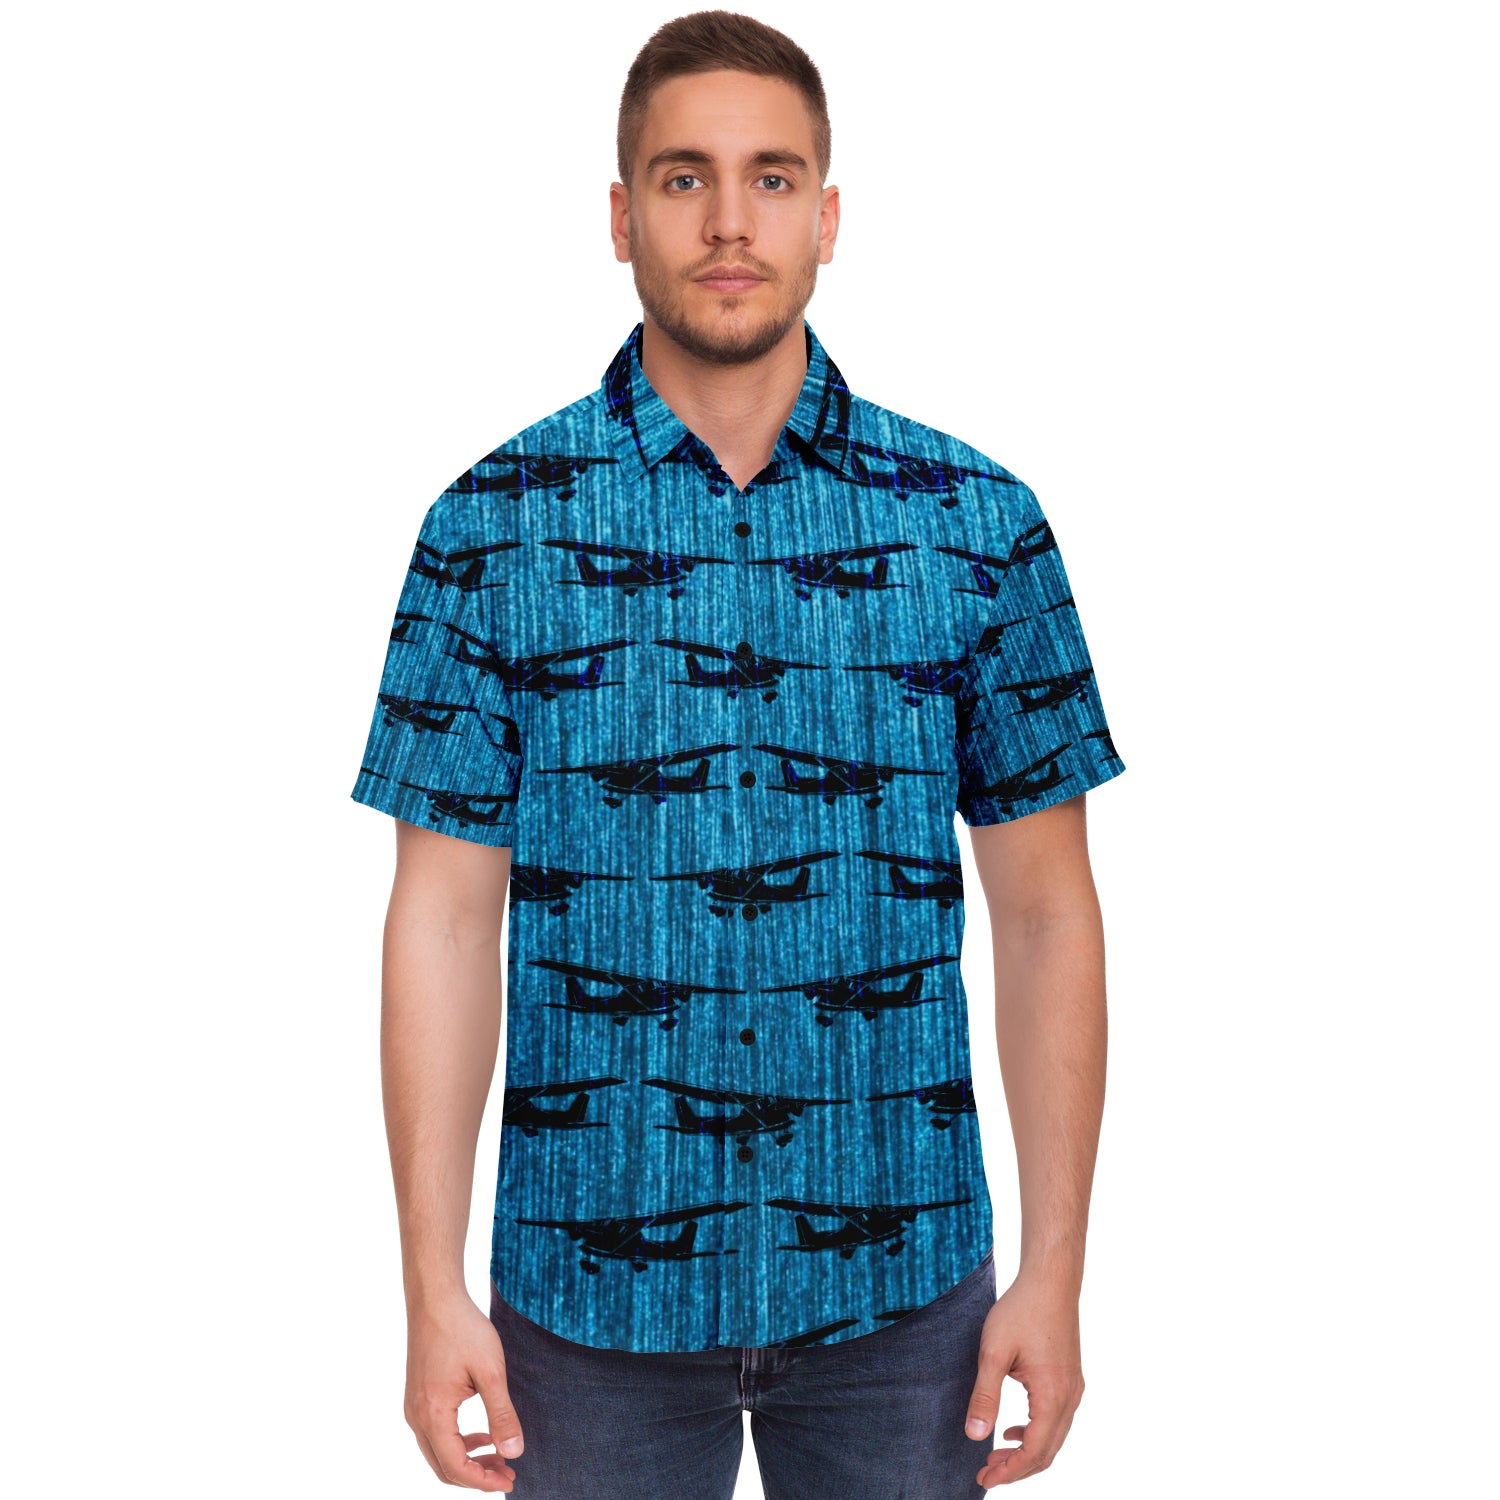 COCAINE COWBOY SHORT SLEEVE SHIRT (MENS)